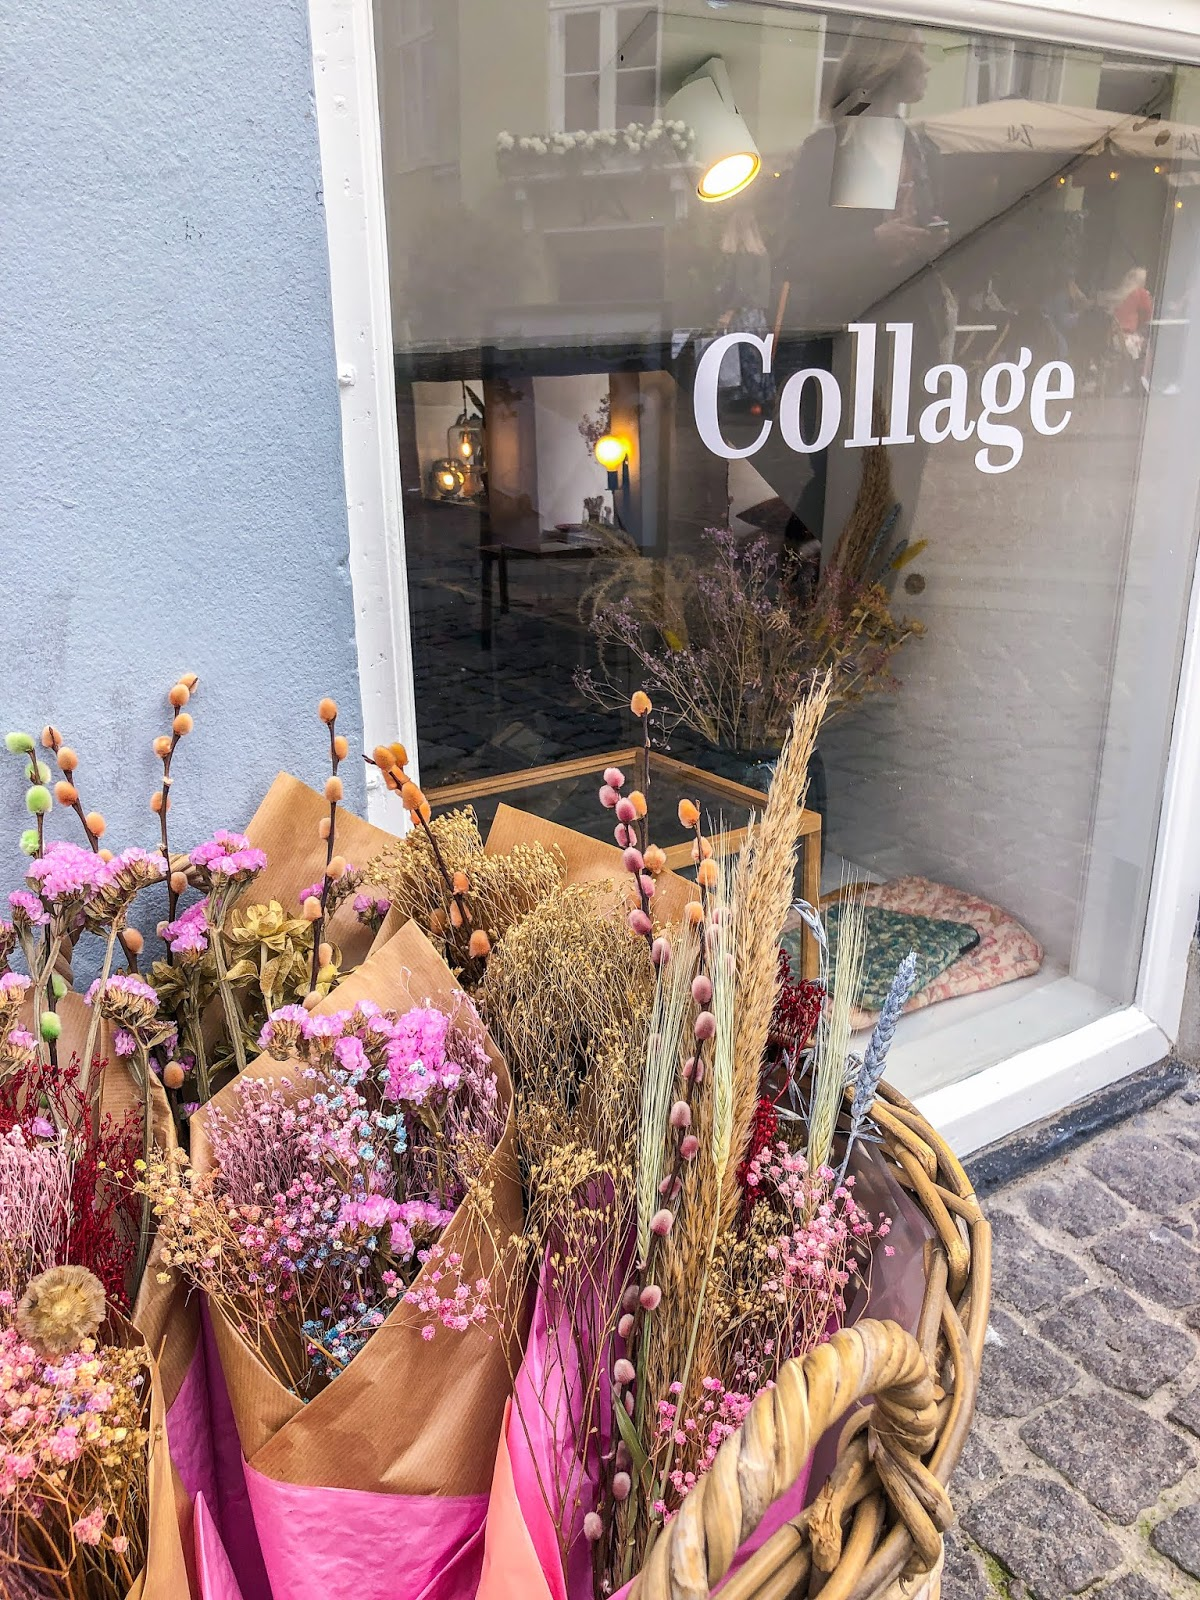 bounces of pastel pink flowers outside shop window of 'Collage' in Copenhagen